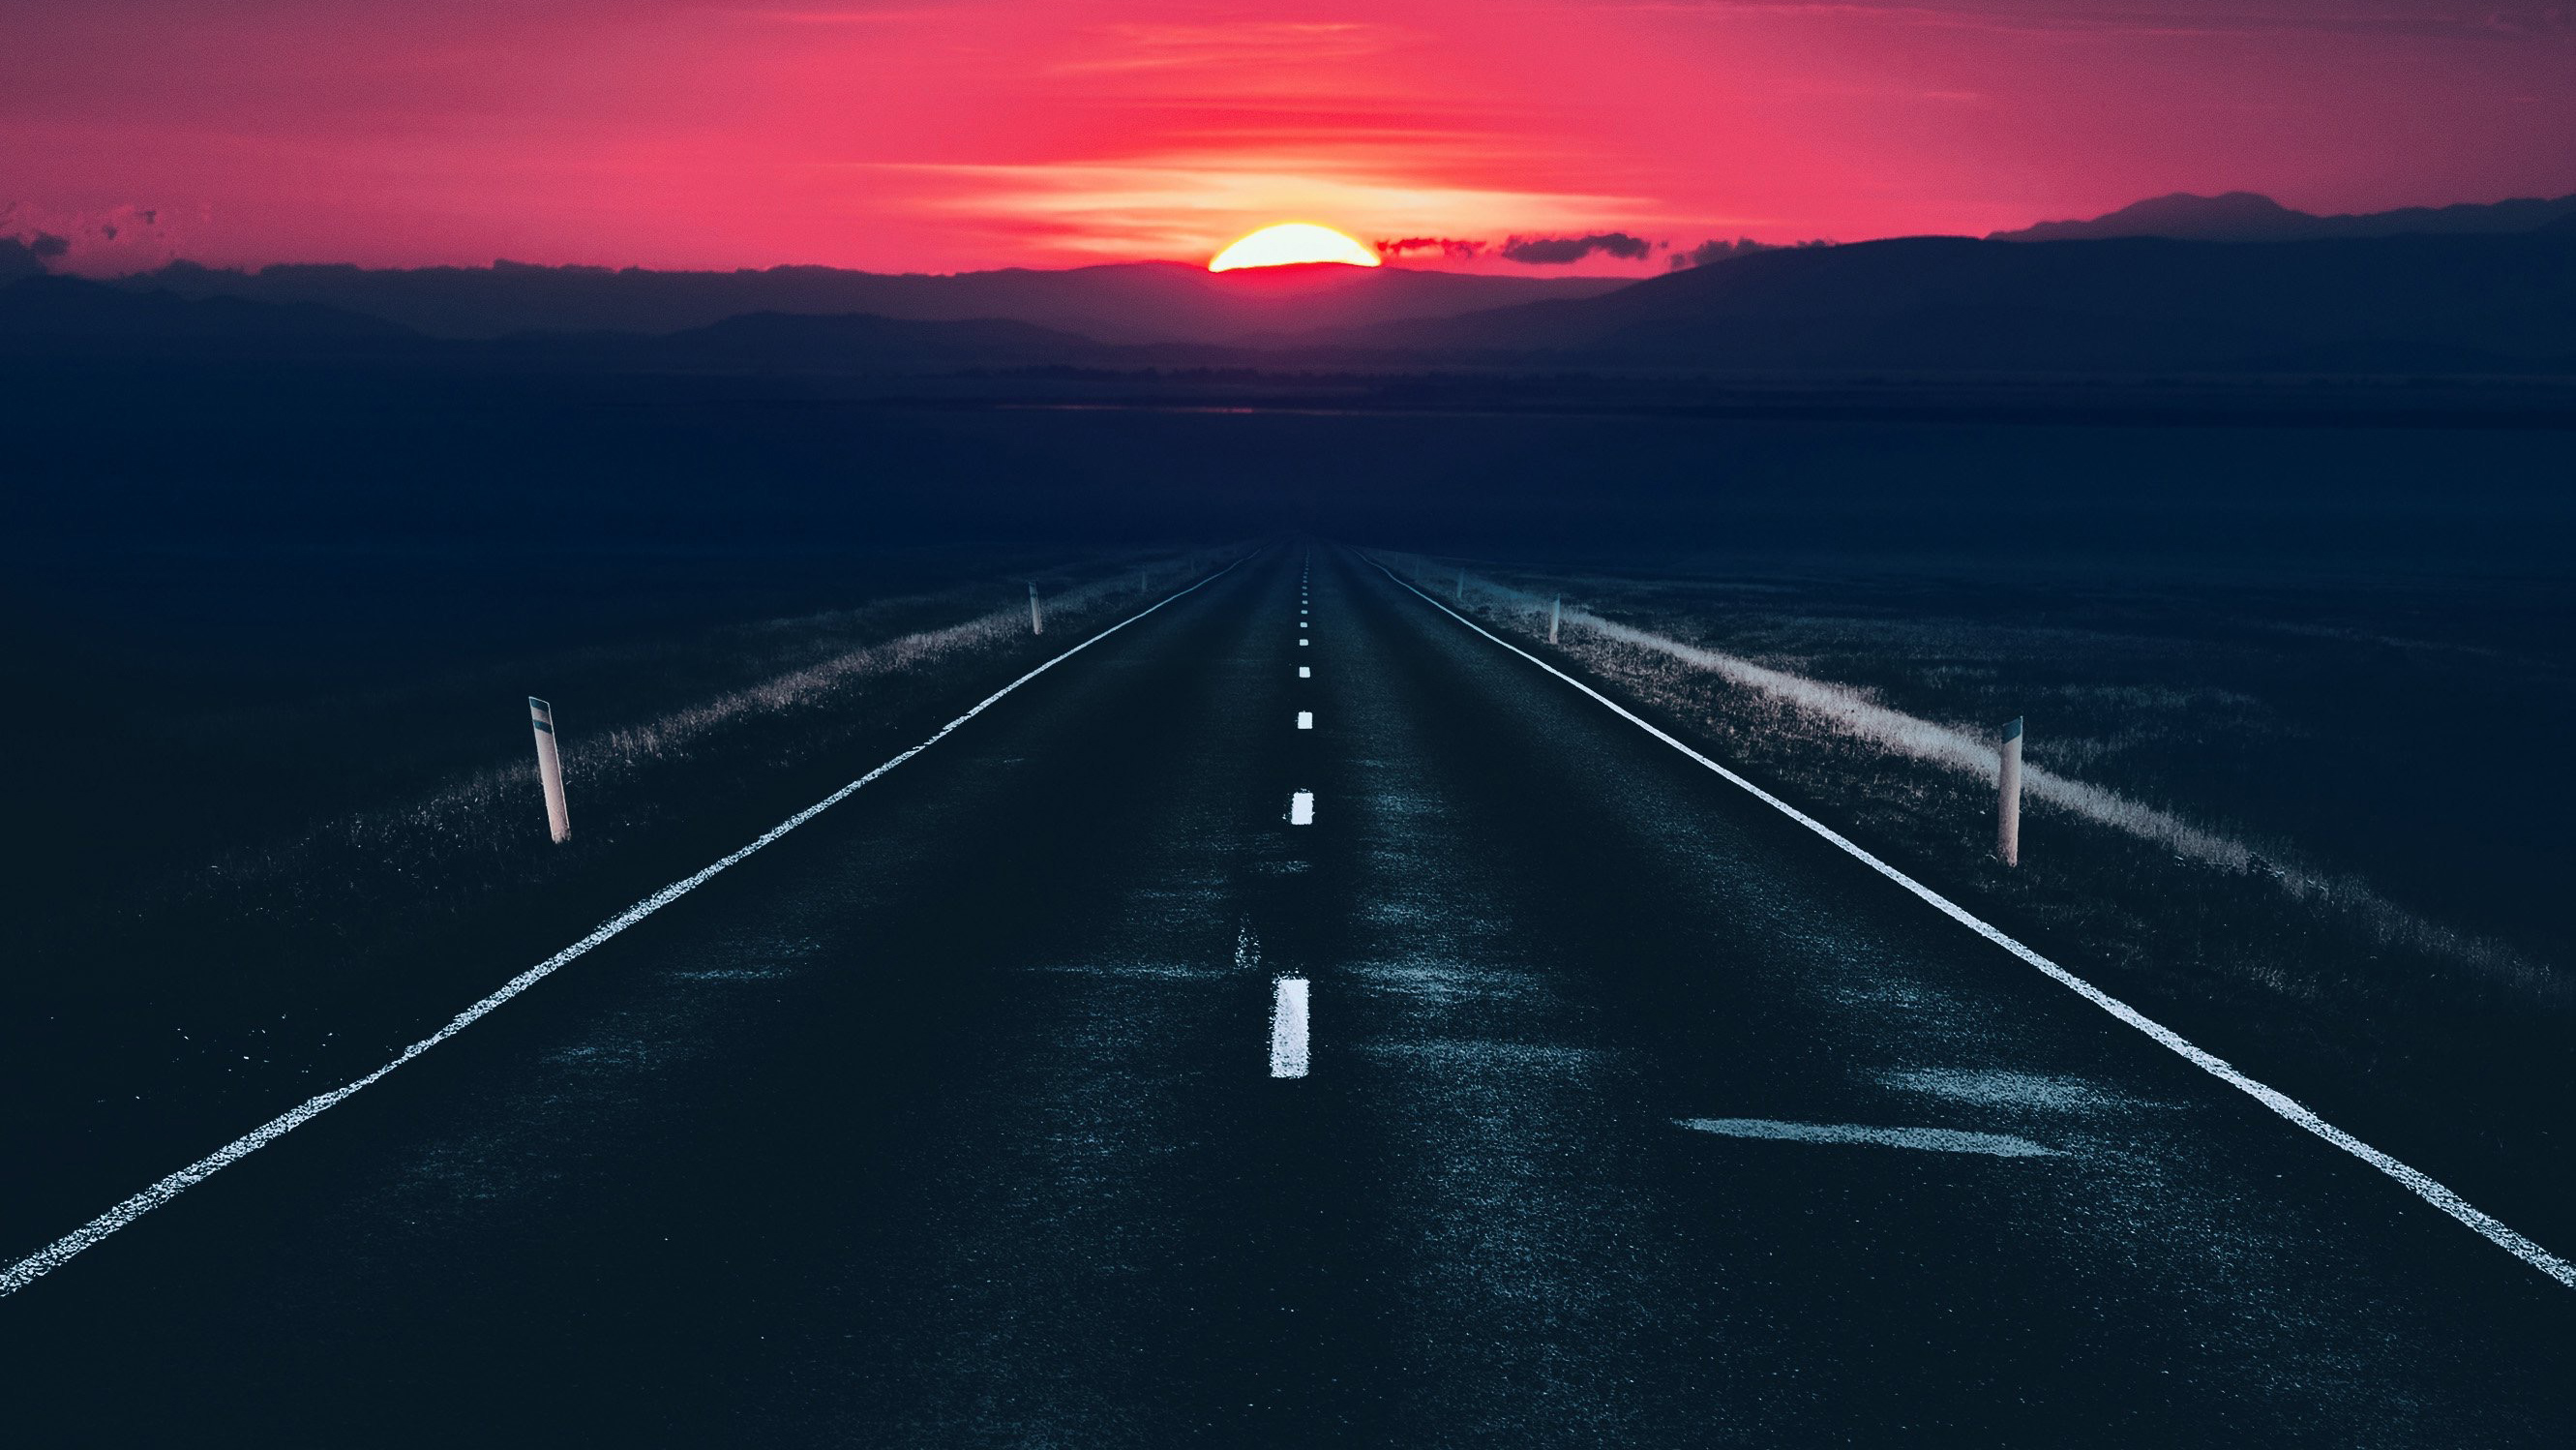 1280x1024 Long Alone Dark Road Sunset View 1280x1024 Resolution Hd 4k Wallpapers Images Backgrounds Photos And Pictures